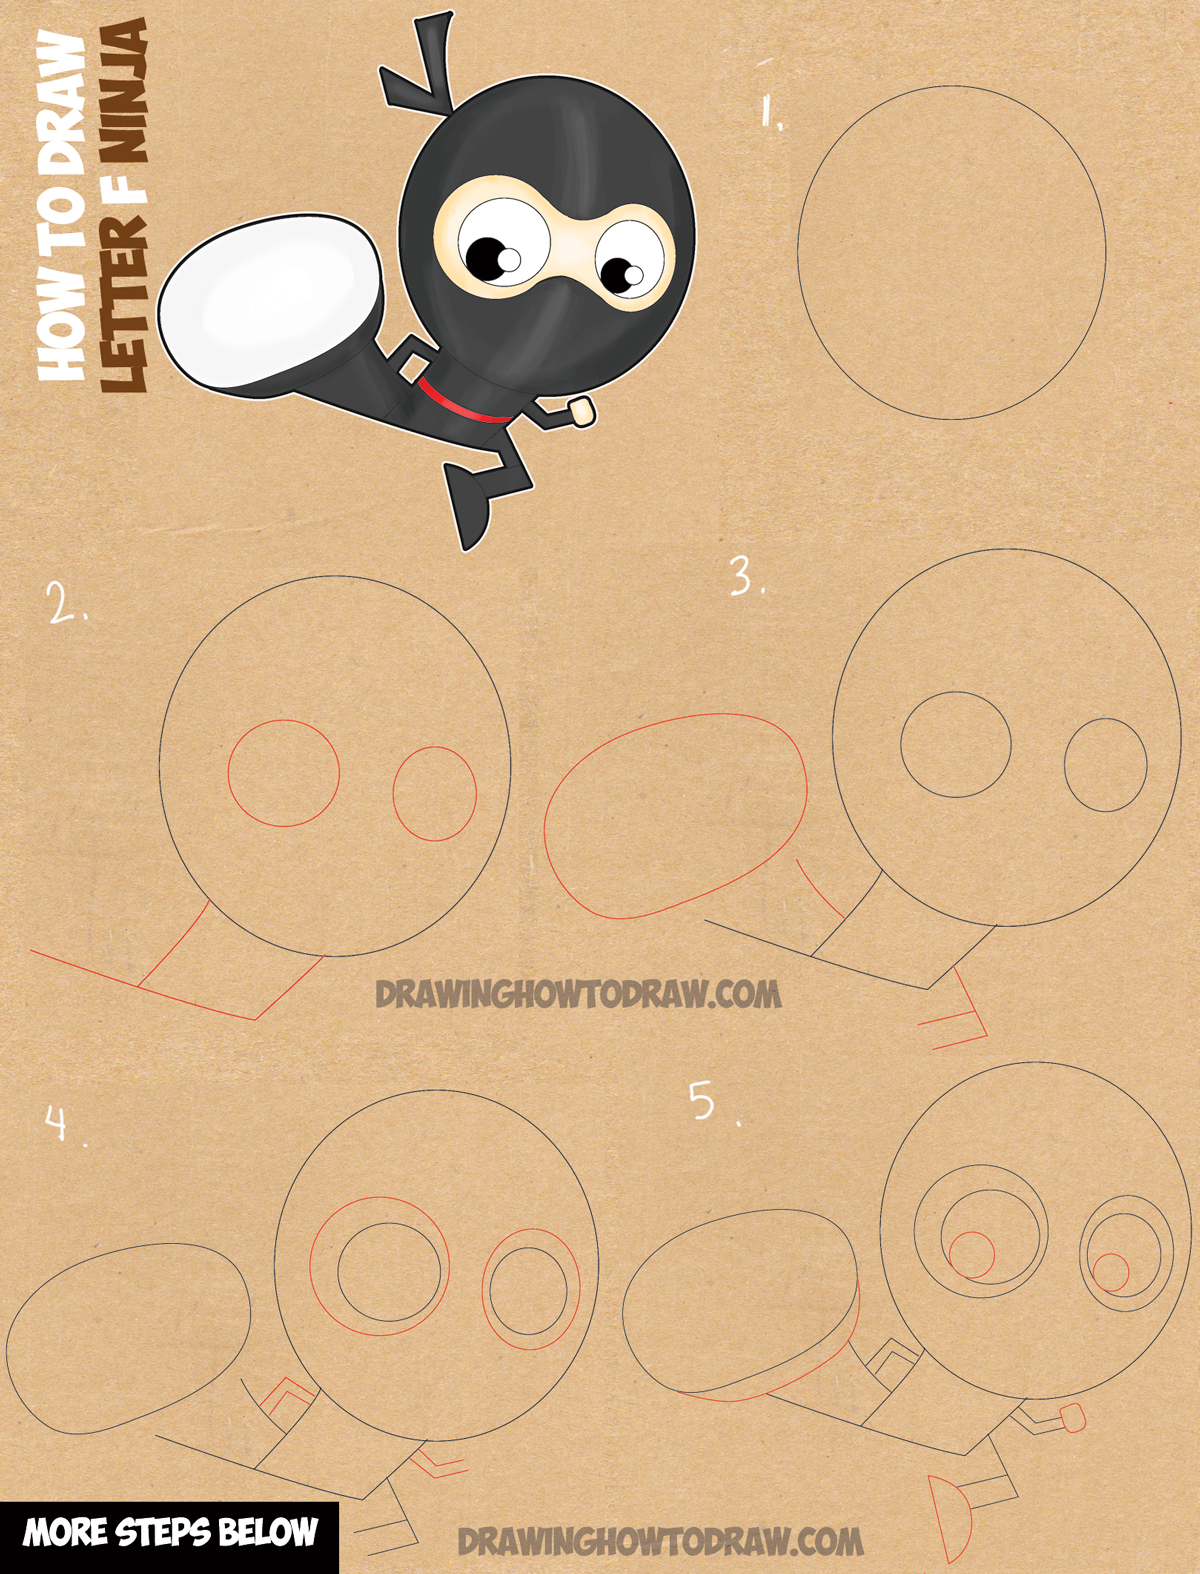 learn how to draw cartoon ninjas with the letter f easy drawing tutorial for kids